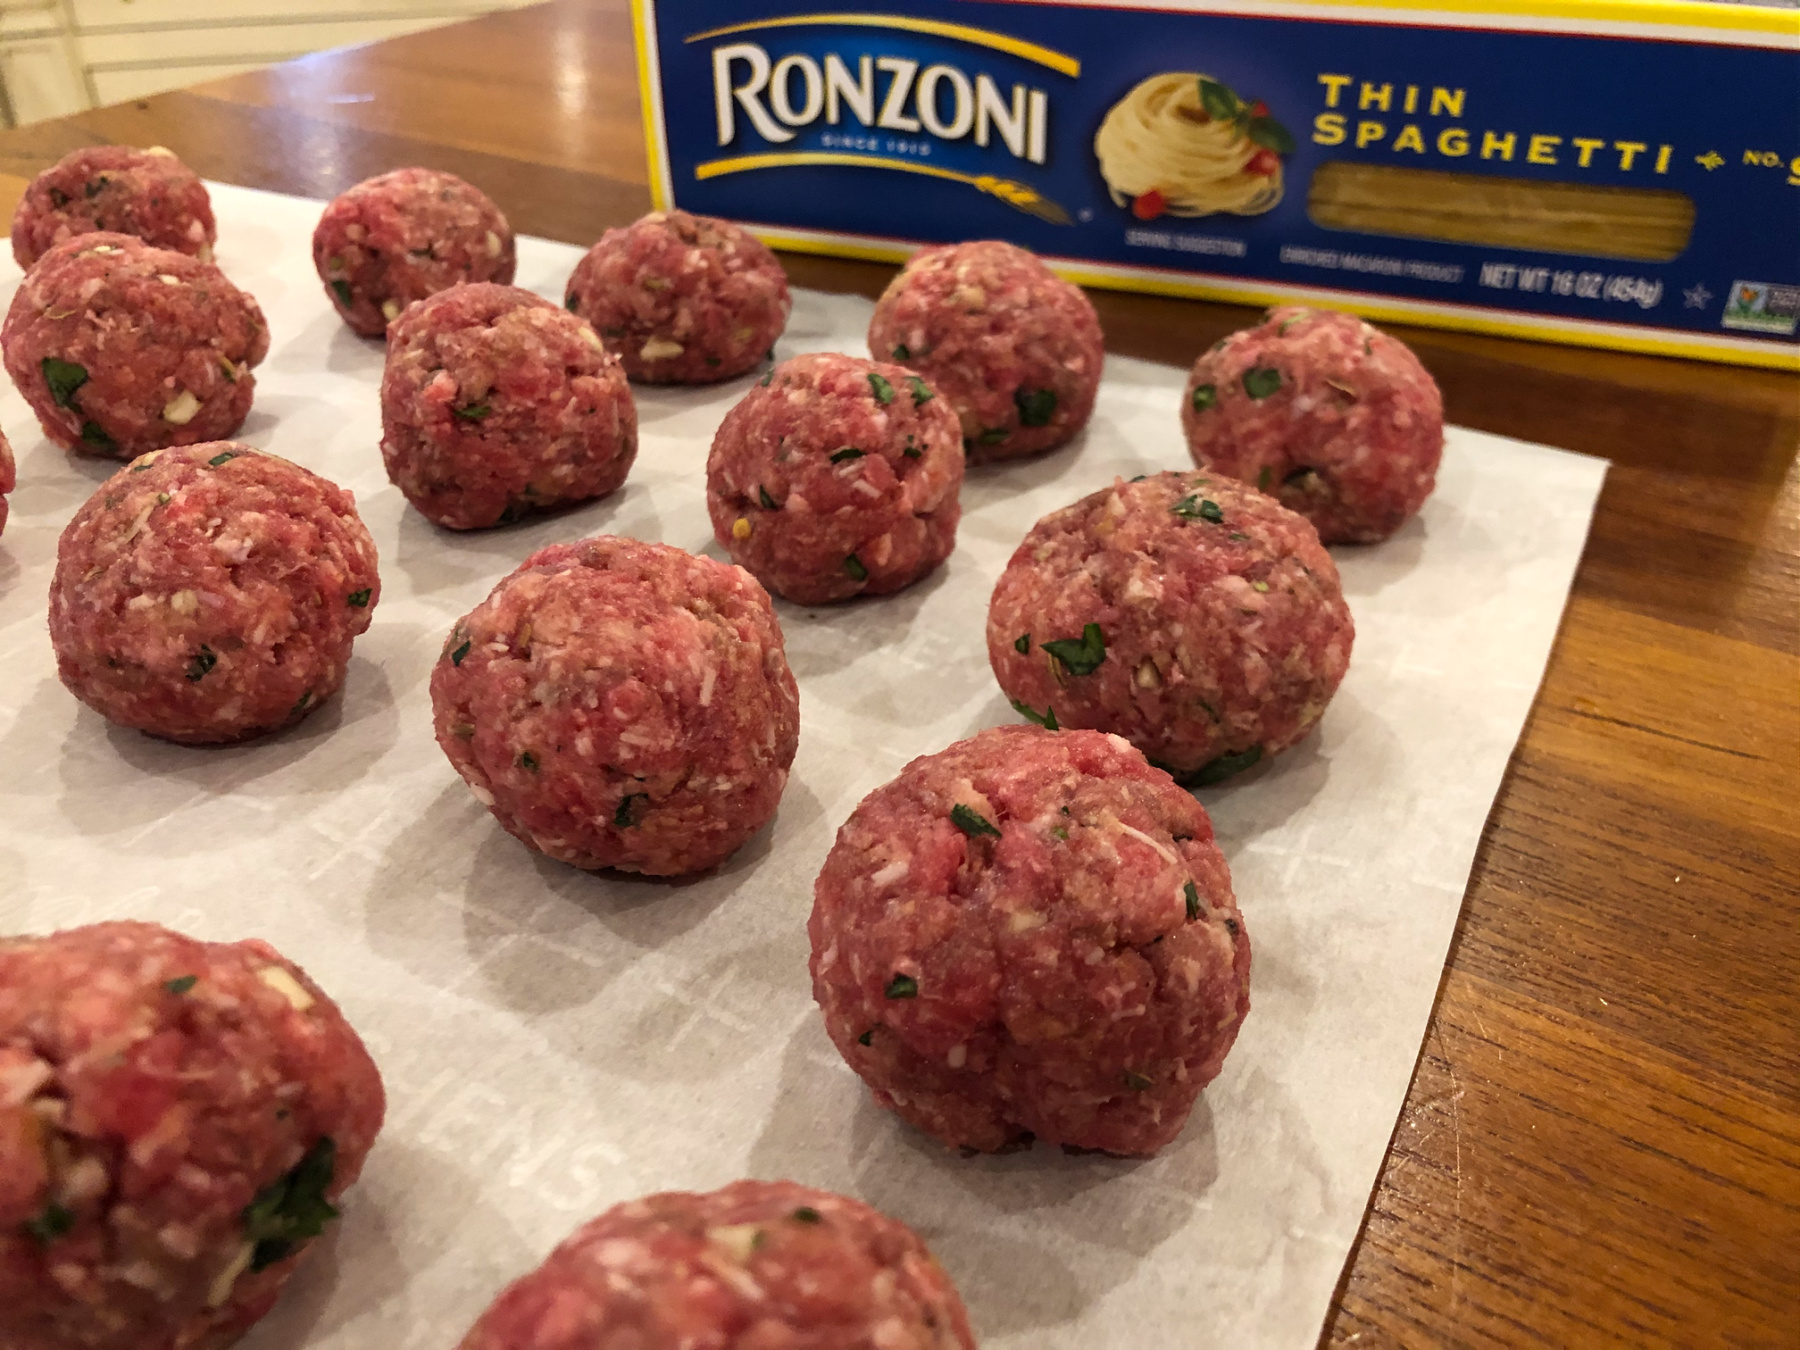 One-Pot Thin Spaghetti And Meatballs - Amazing Recipe To Go With The Ronzoni BOGO Sale! on I Heart Publix 3